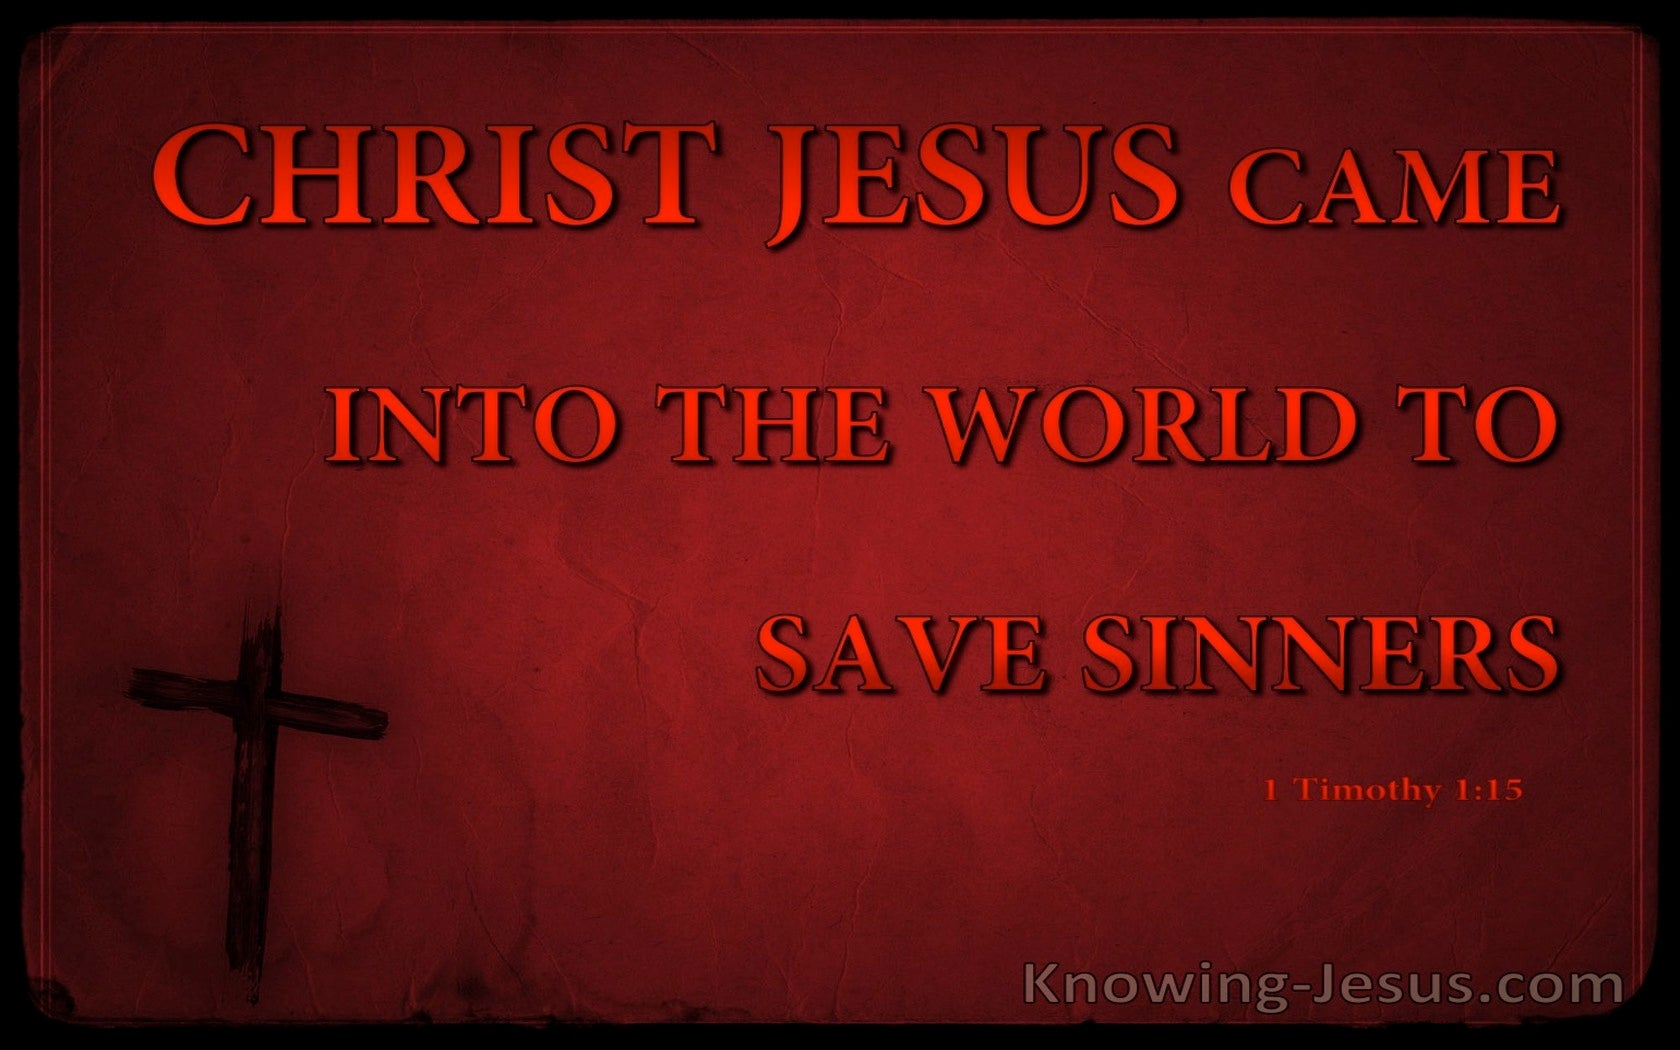 1 Timothy 1:15 Christ Jesus Came Into The World To Save Sinners (red)